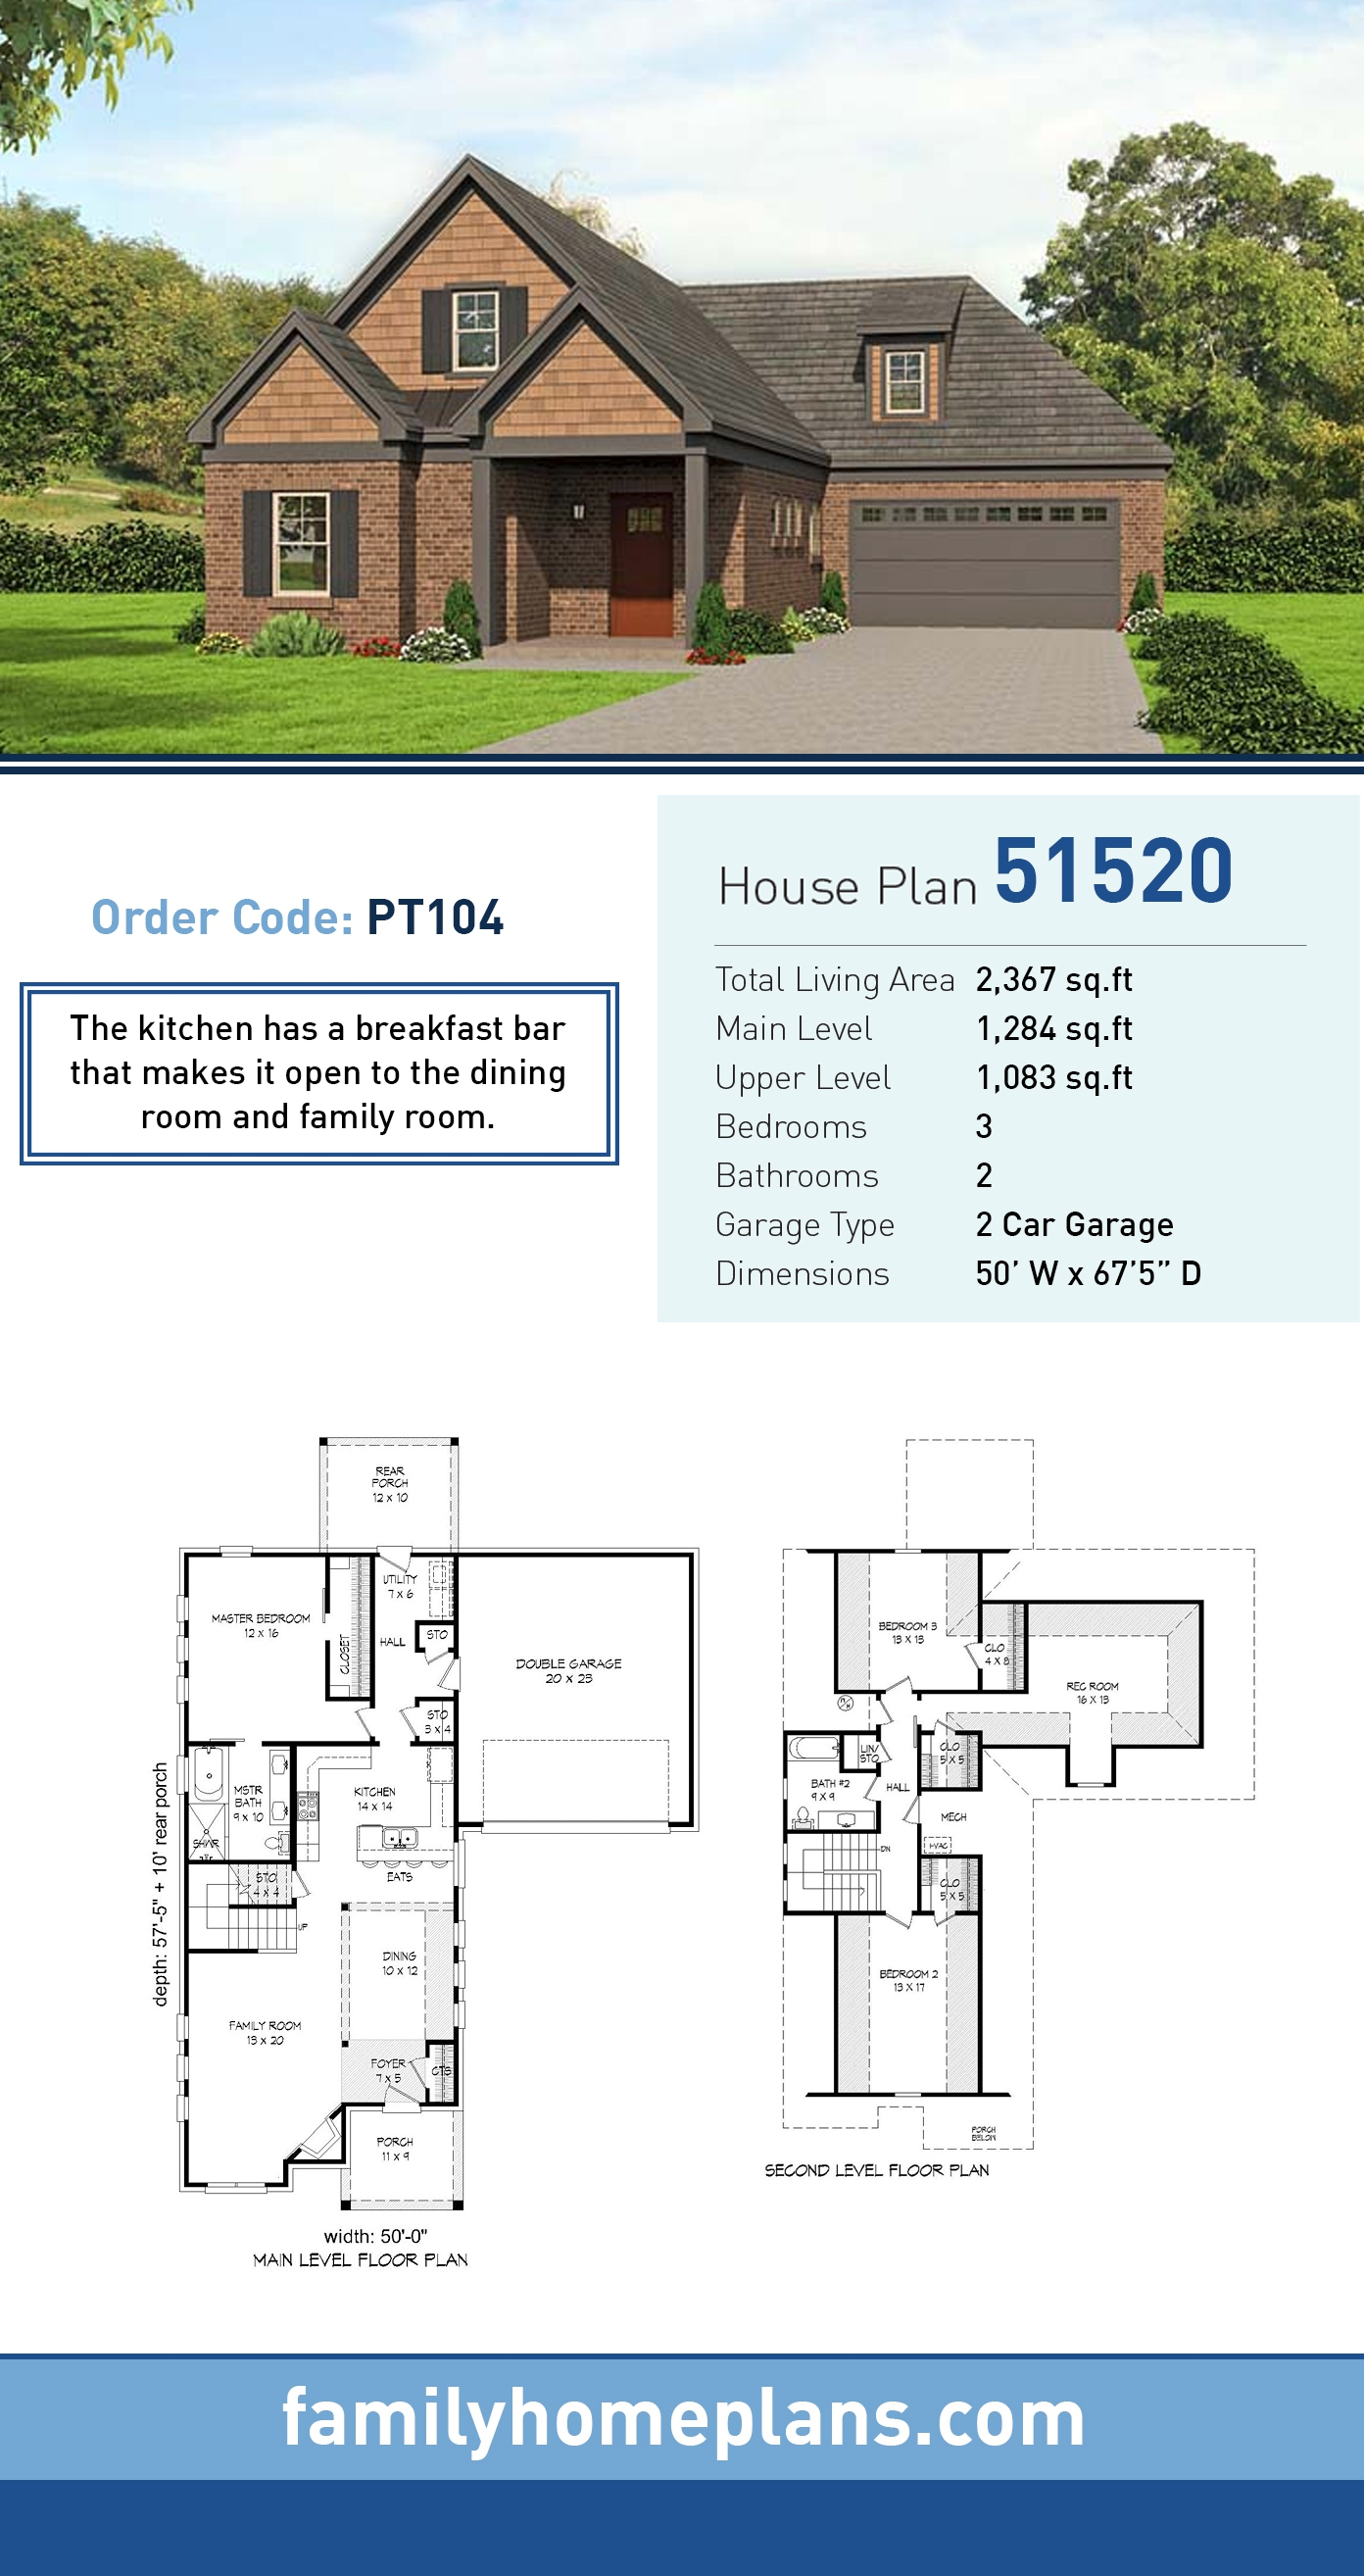 Cottage, Southern, Traditional House Plan 51520 with 3 Beds, 2 Baths, 2 Car Garage